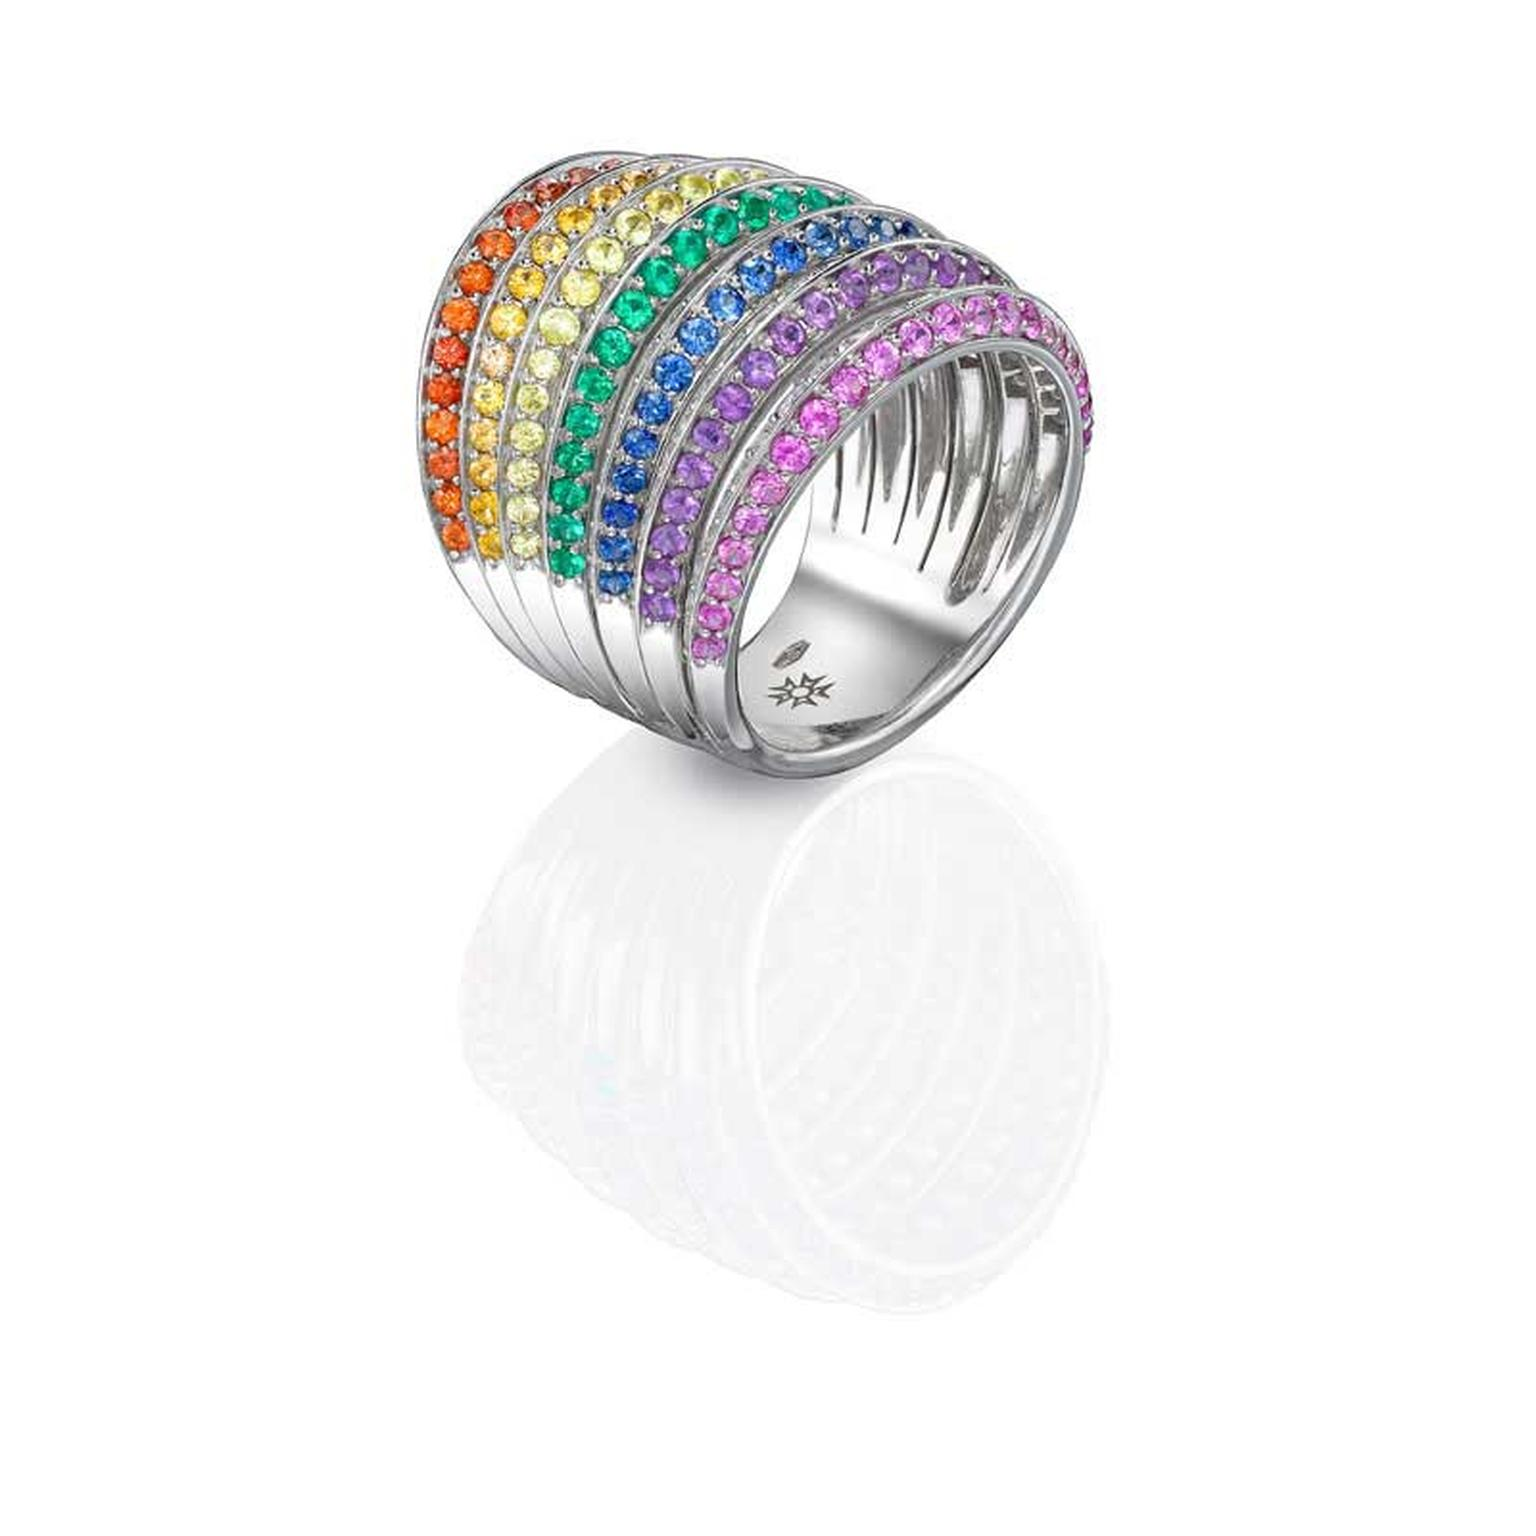 Sybarite rainbow ring with coloured multi-coloured gemstones.